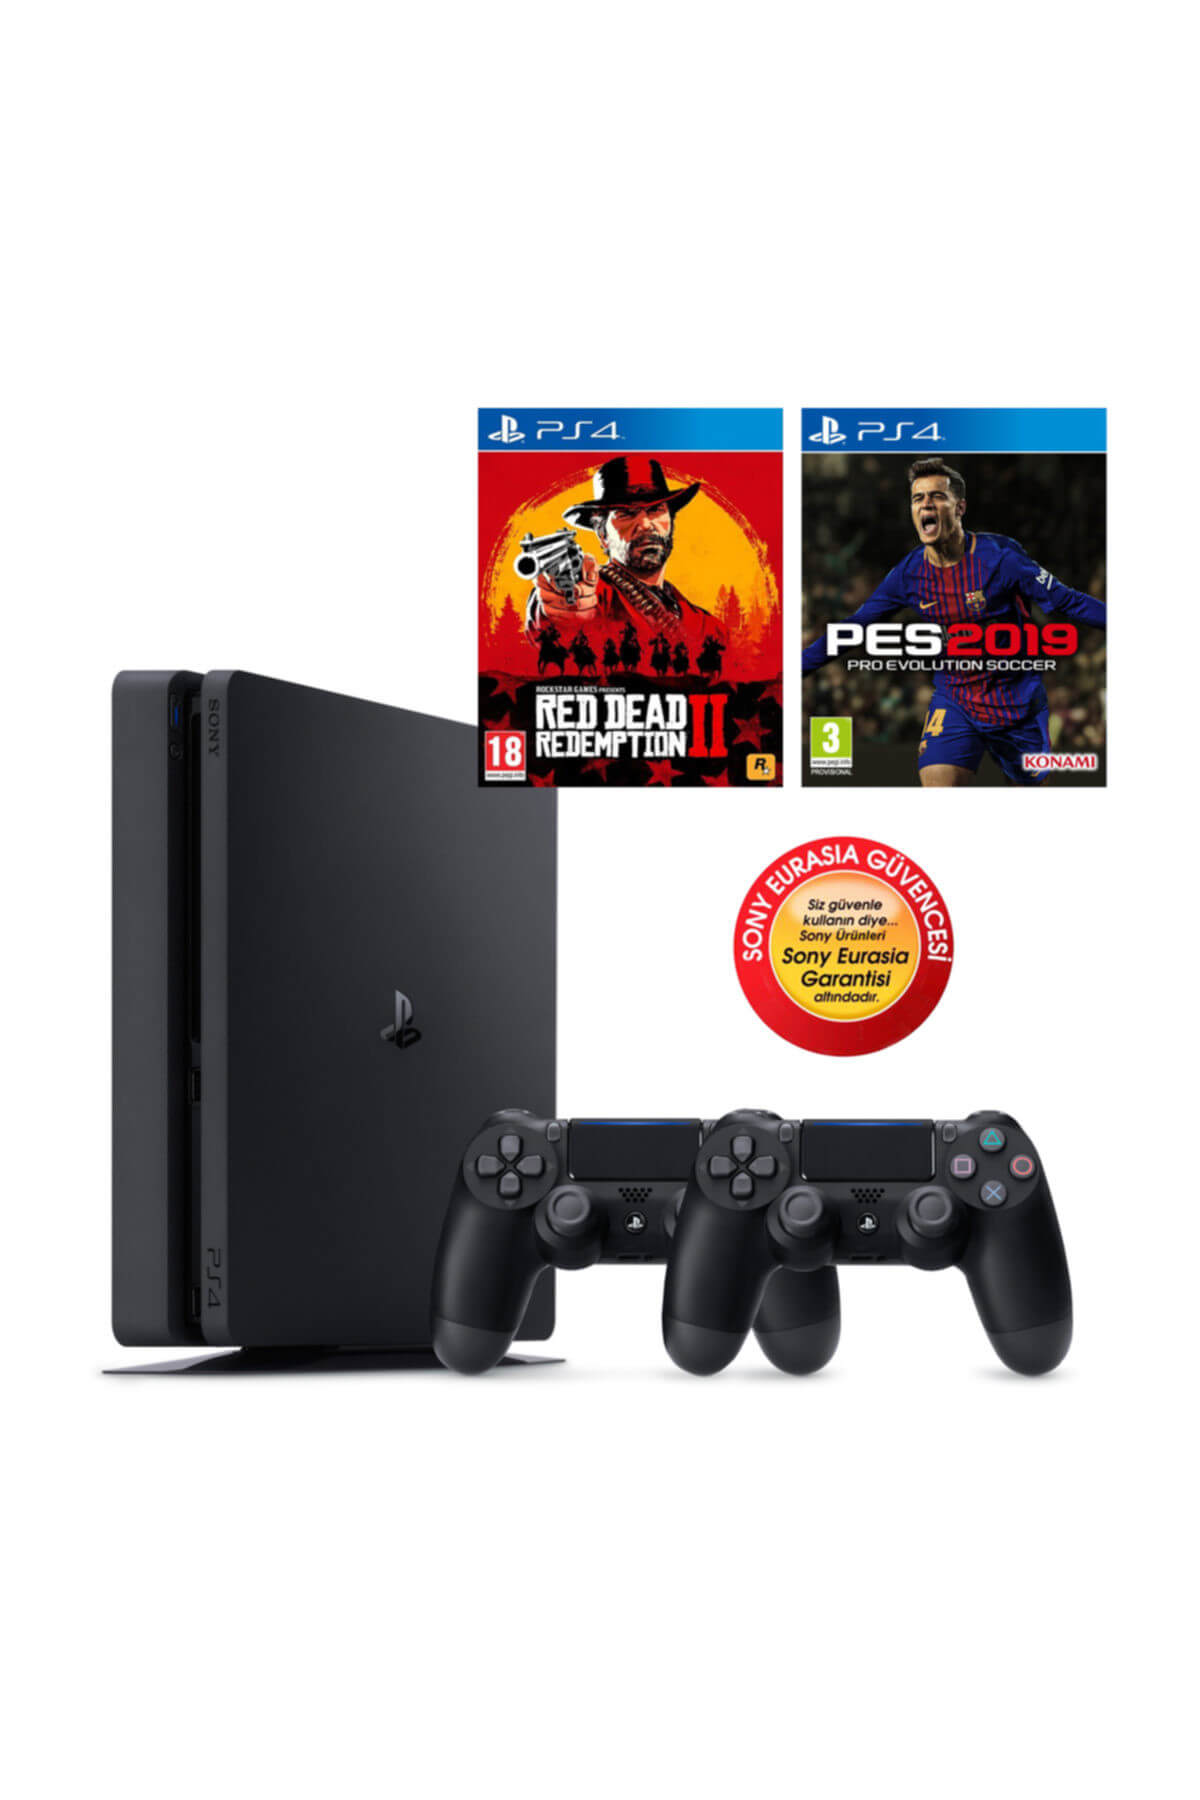 Sony Ps4 Slim 500gb Oyun Konsolu Eurasia Garantili + Ps4 Pes 19 Red Dead Redemption 2 2.